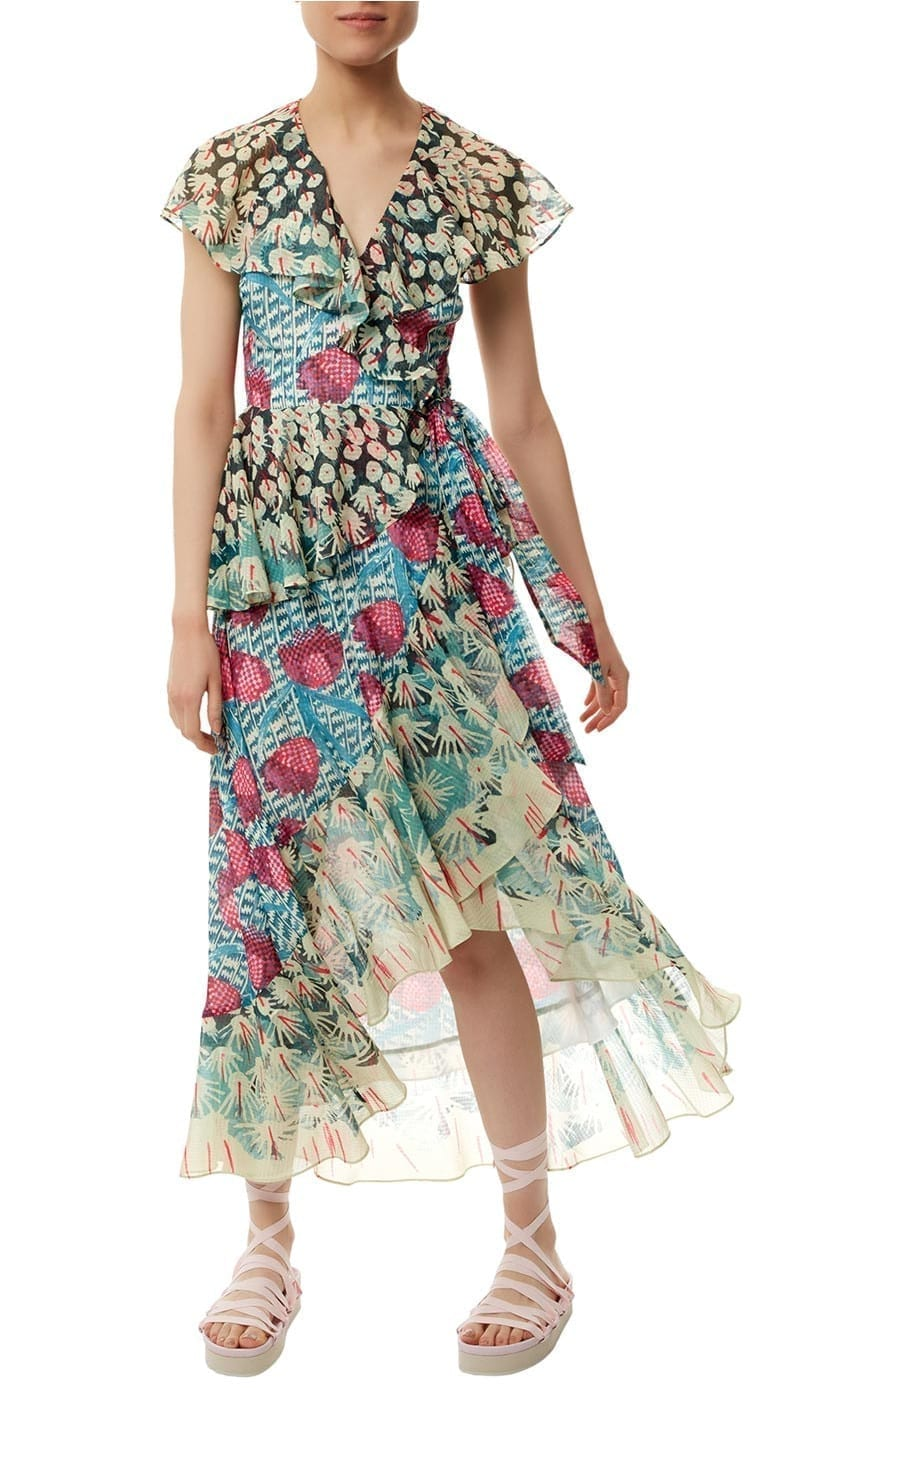 TEMPERLEY LONDON Garden Cacti Turquoise / Printed Dress